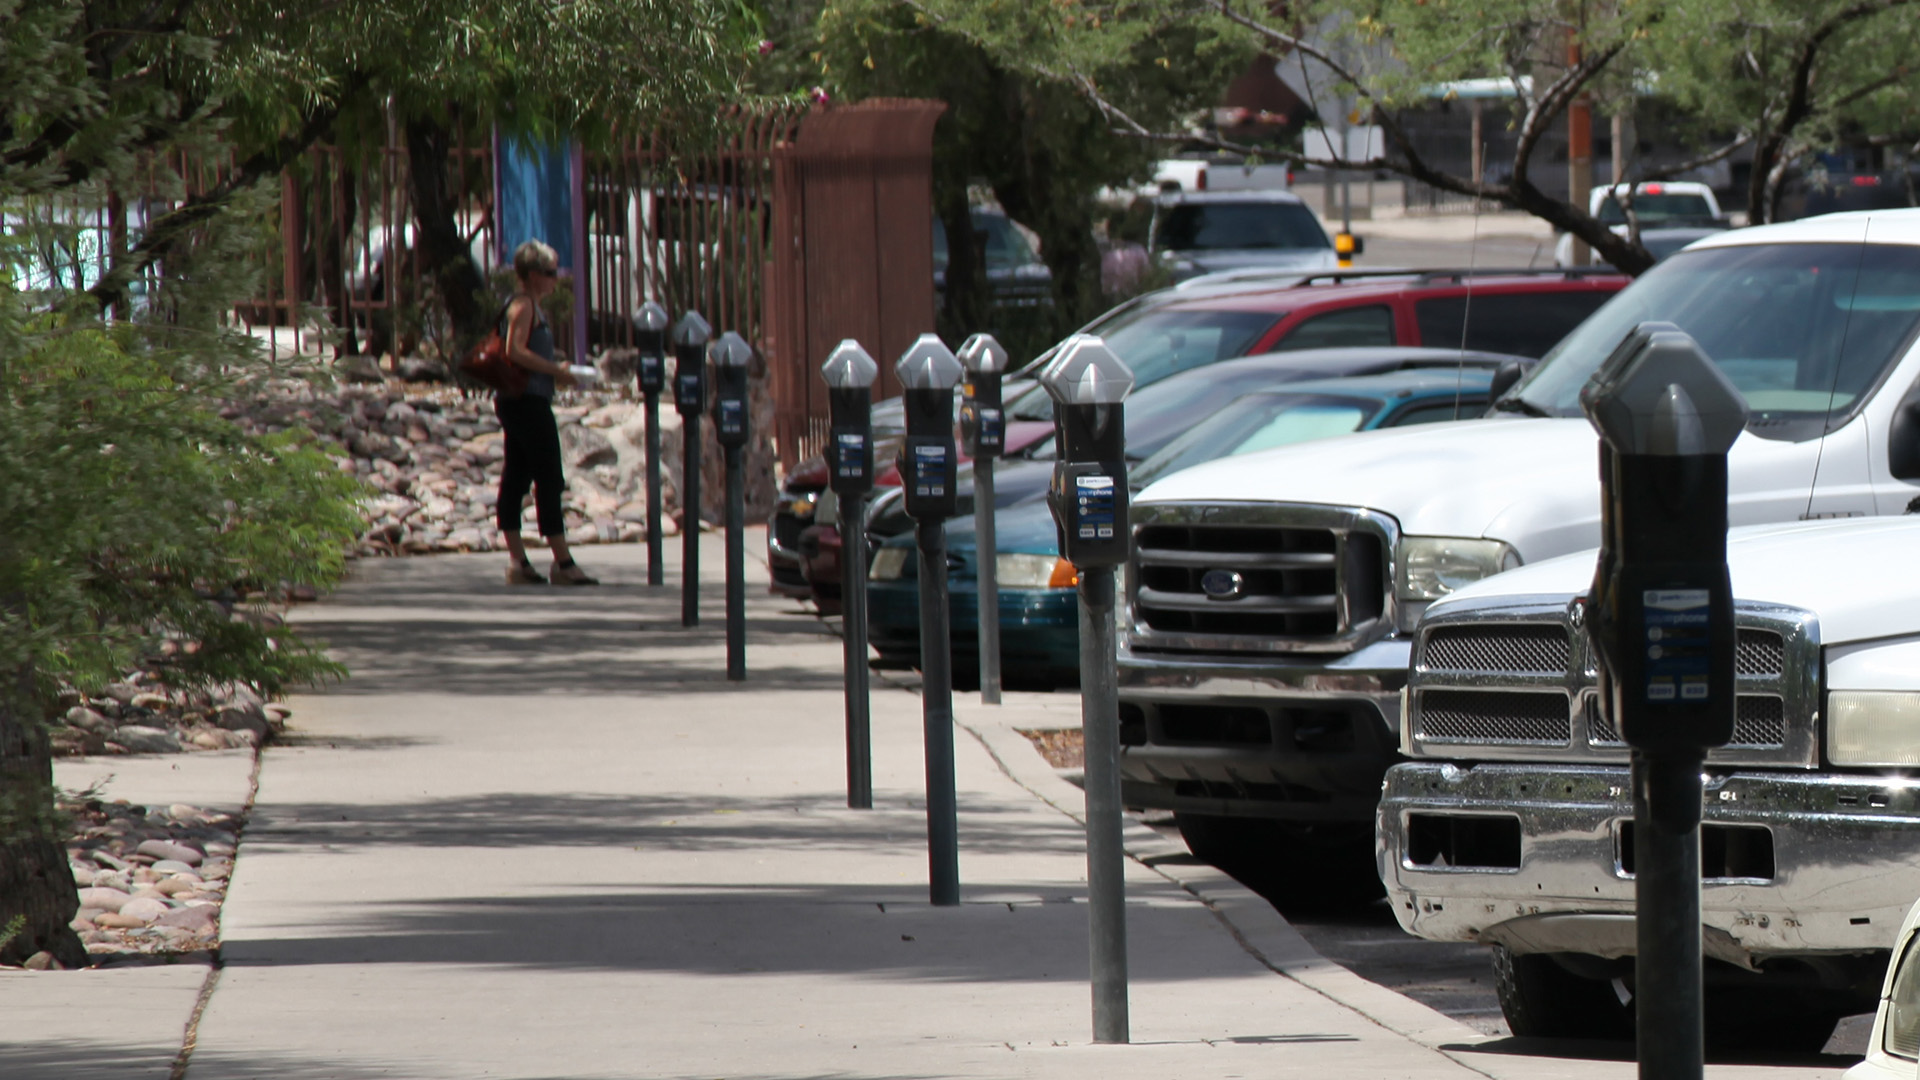 Parking meters in Tucson.